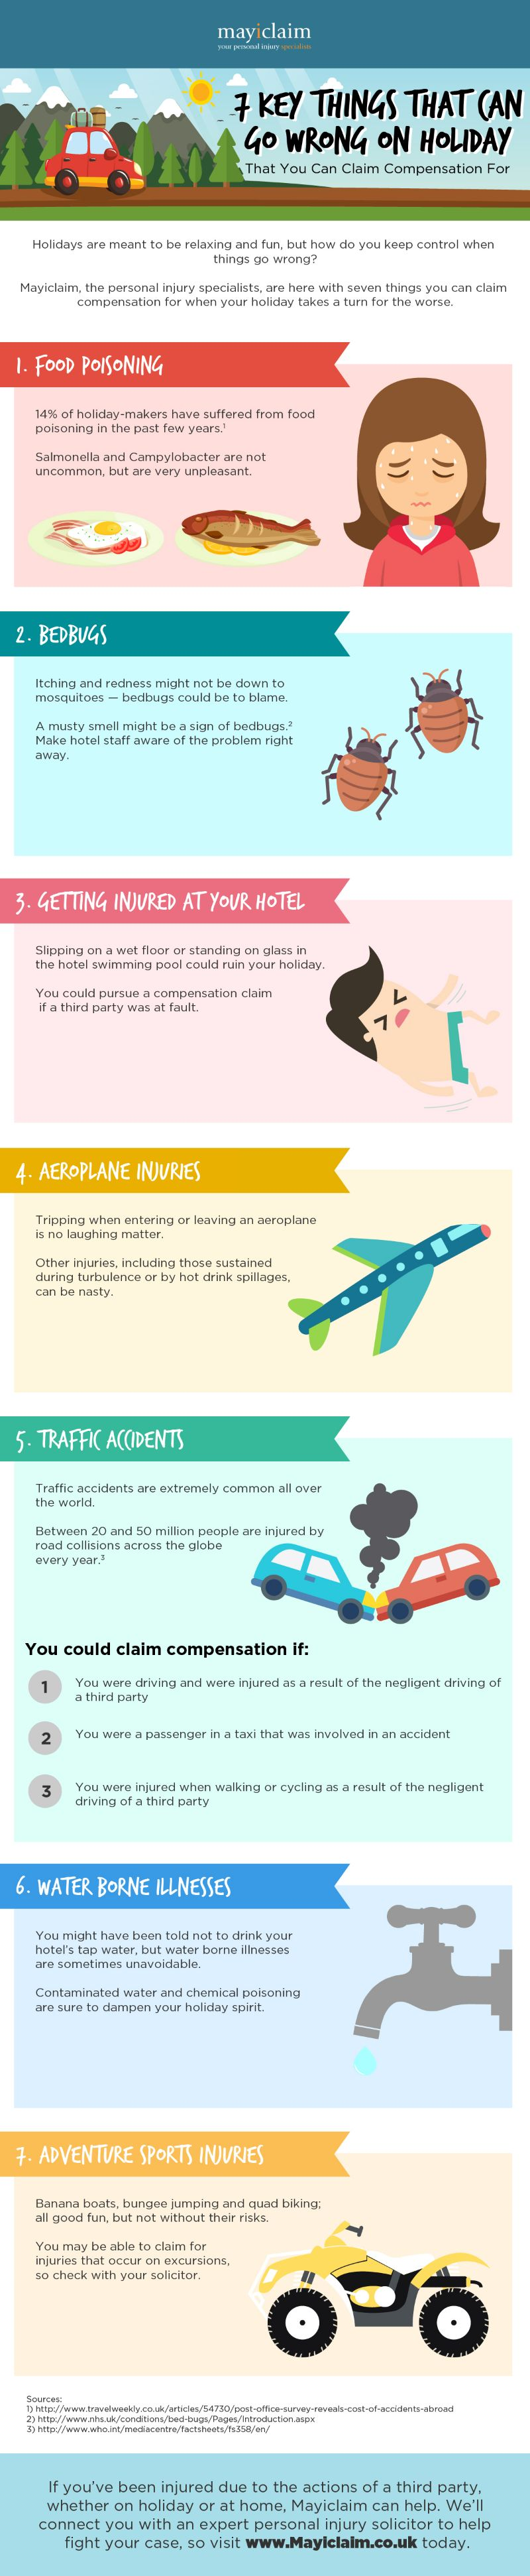 things-can-go-wrong-on-holiday-infographic-plaza